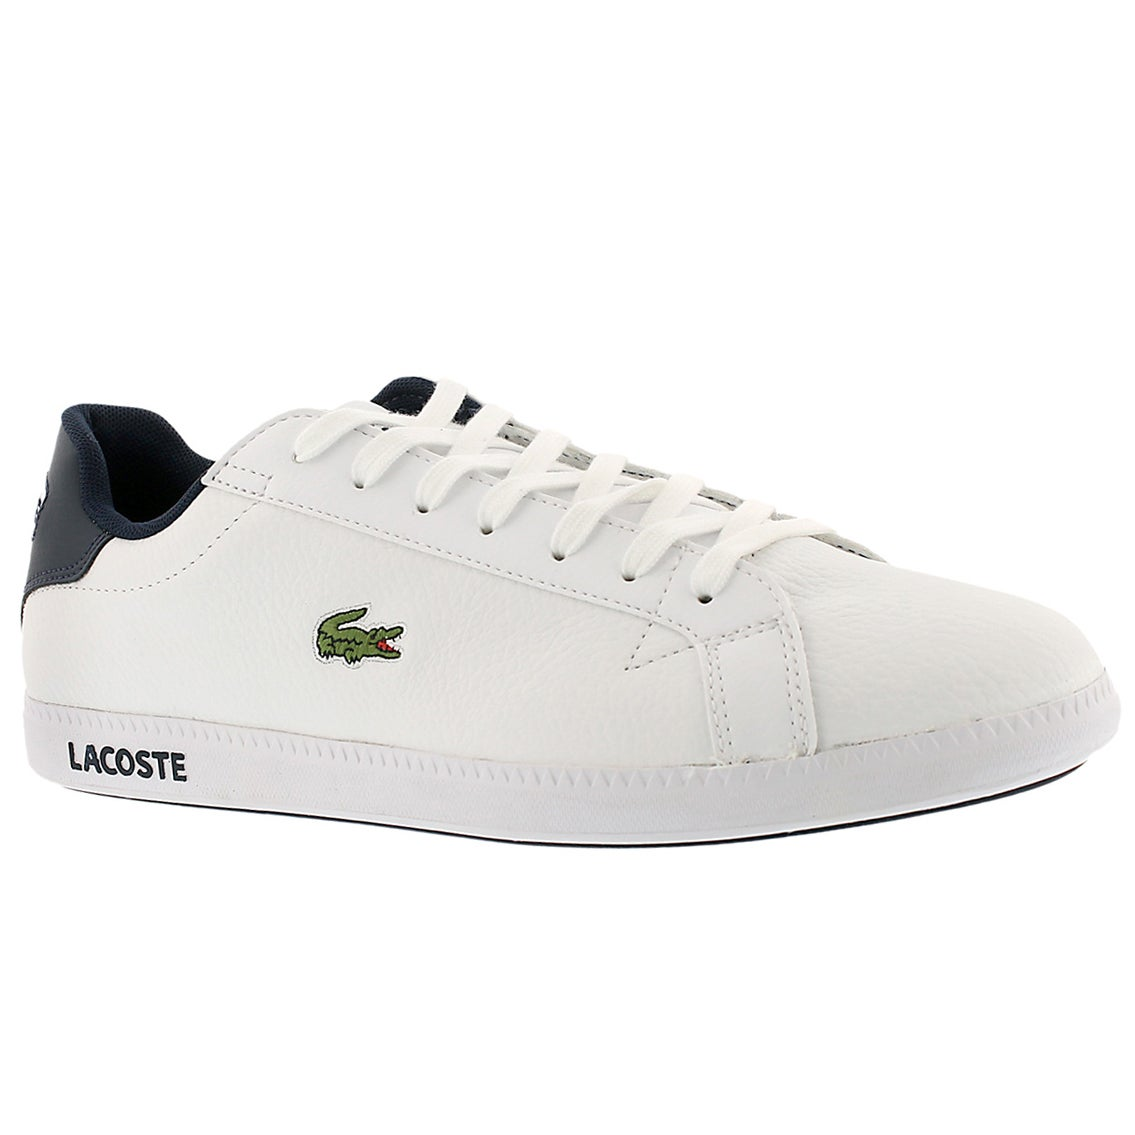 Men's GRADUATE LCR white/blue fashion sneakers